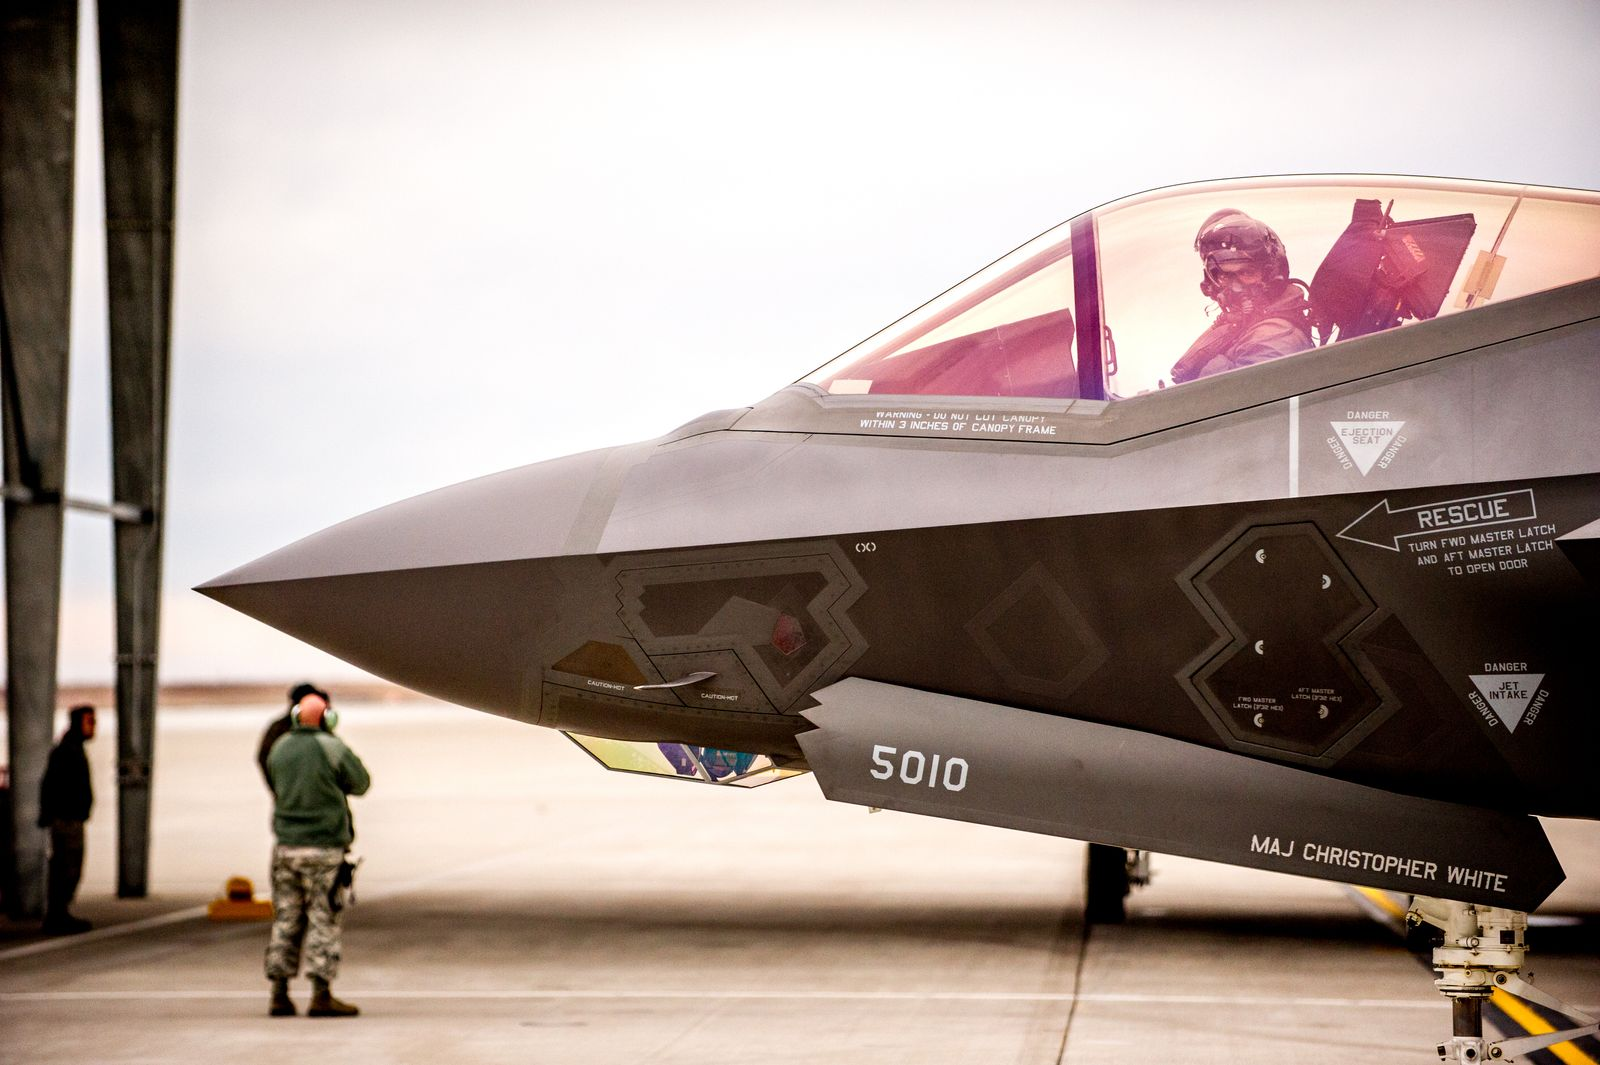 America Might Not Have the Best Version of the F-35